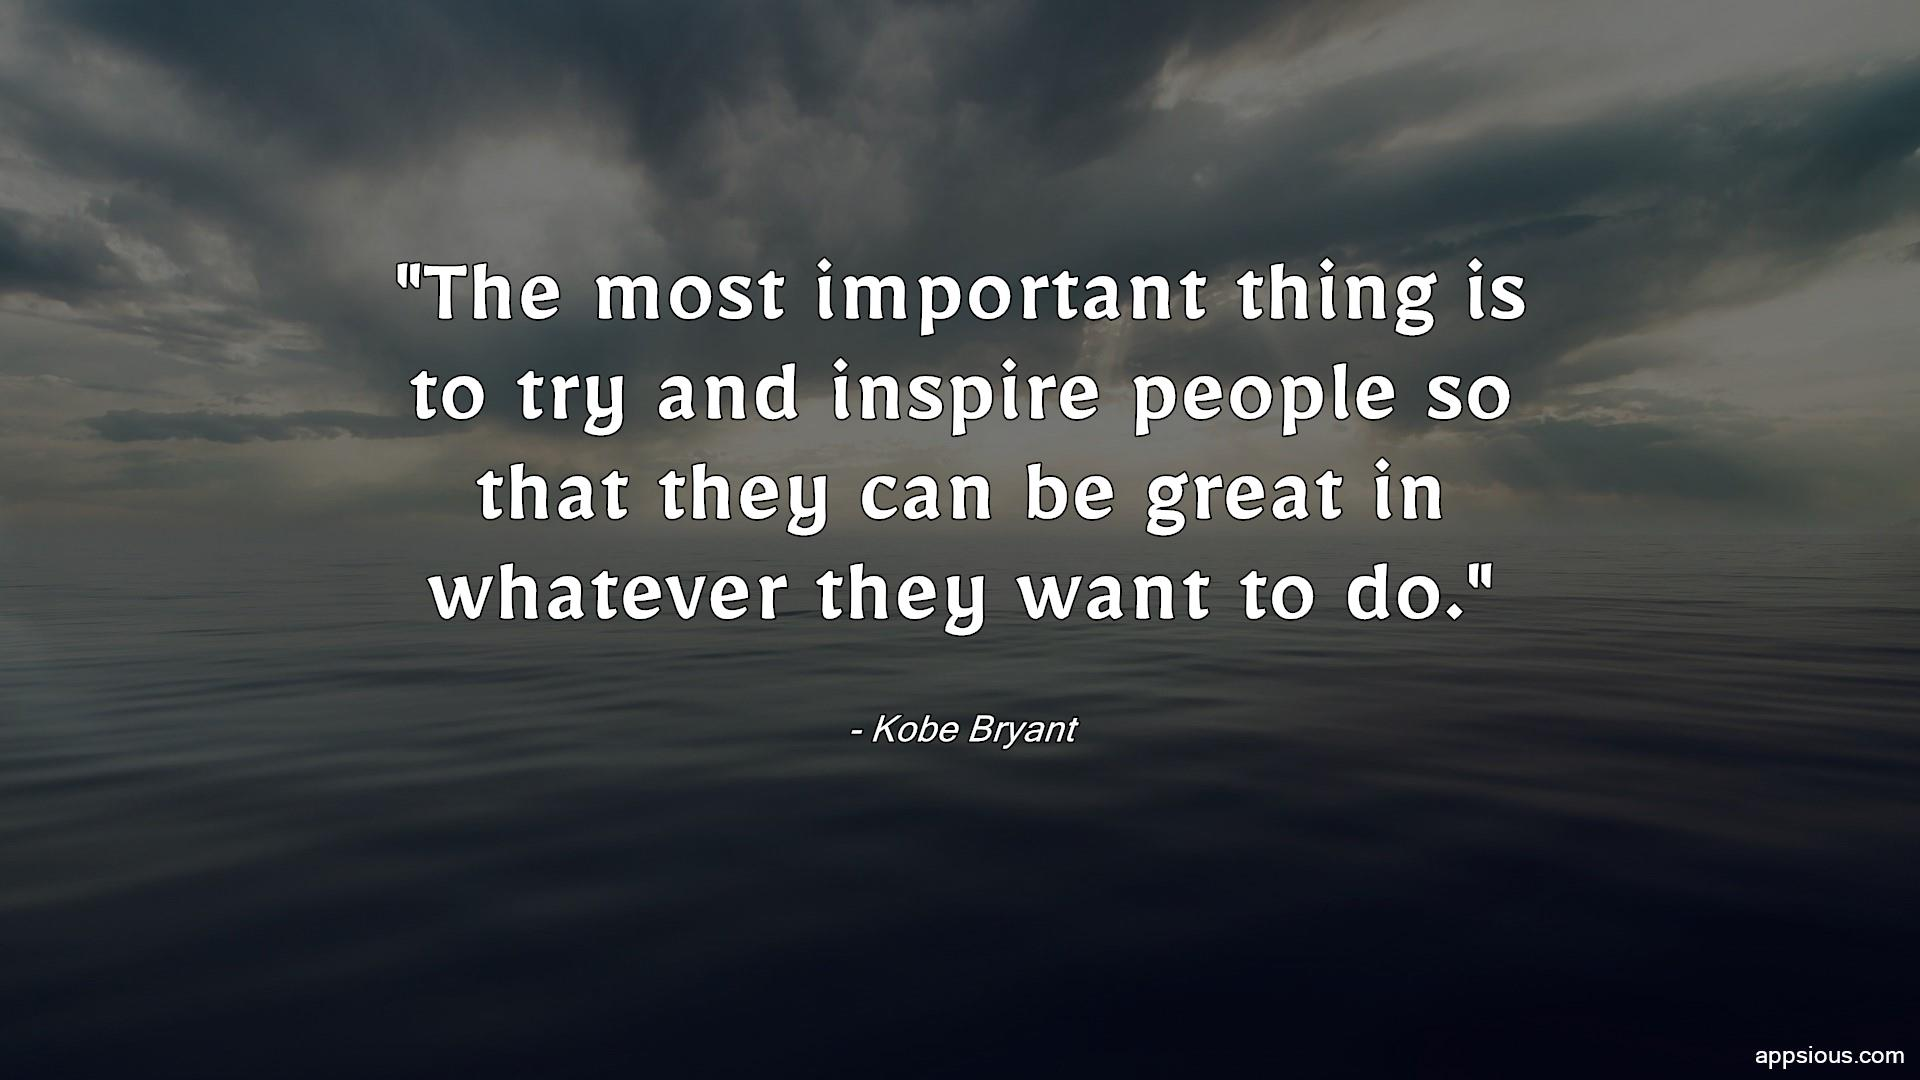 The most important thing is to try and inspire people so that they can be great in whatever they want to do.